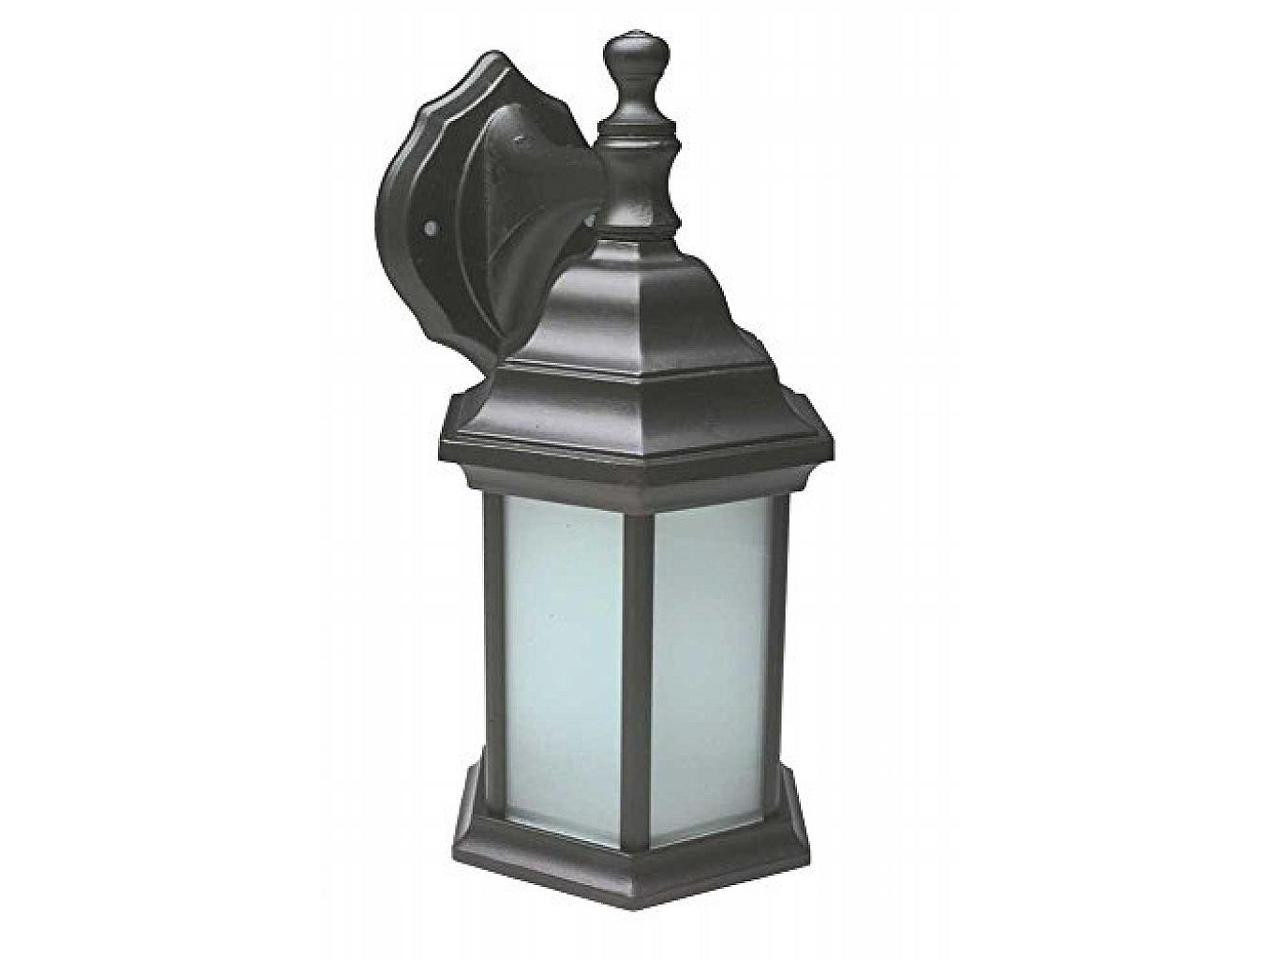 MONUMENT 671405 WALL MOUNT OUTDOOR FIXTURE | BROAD PALLETS